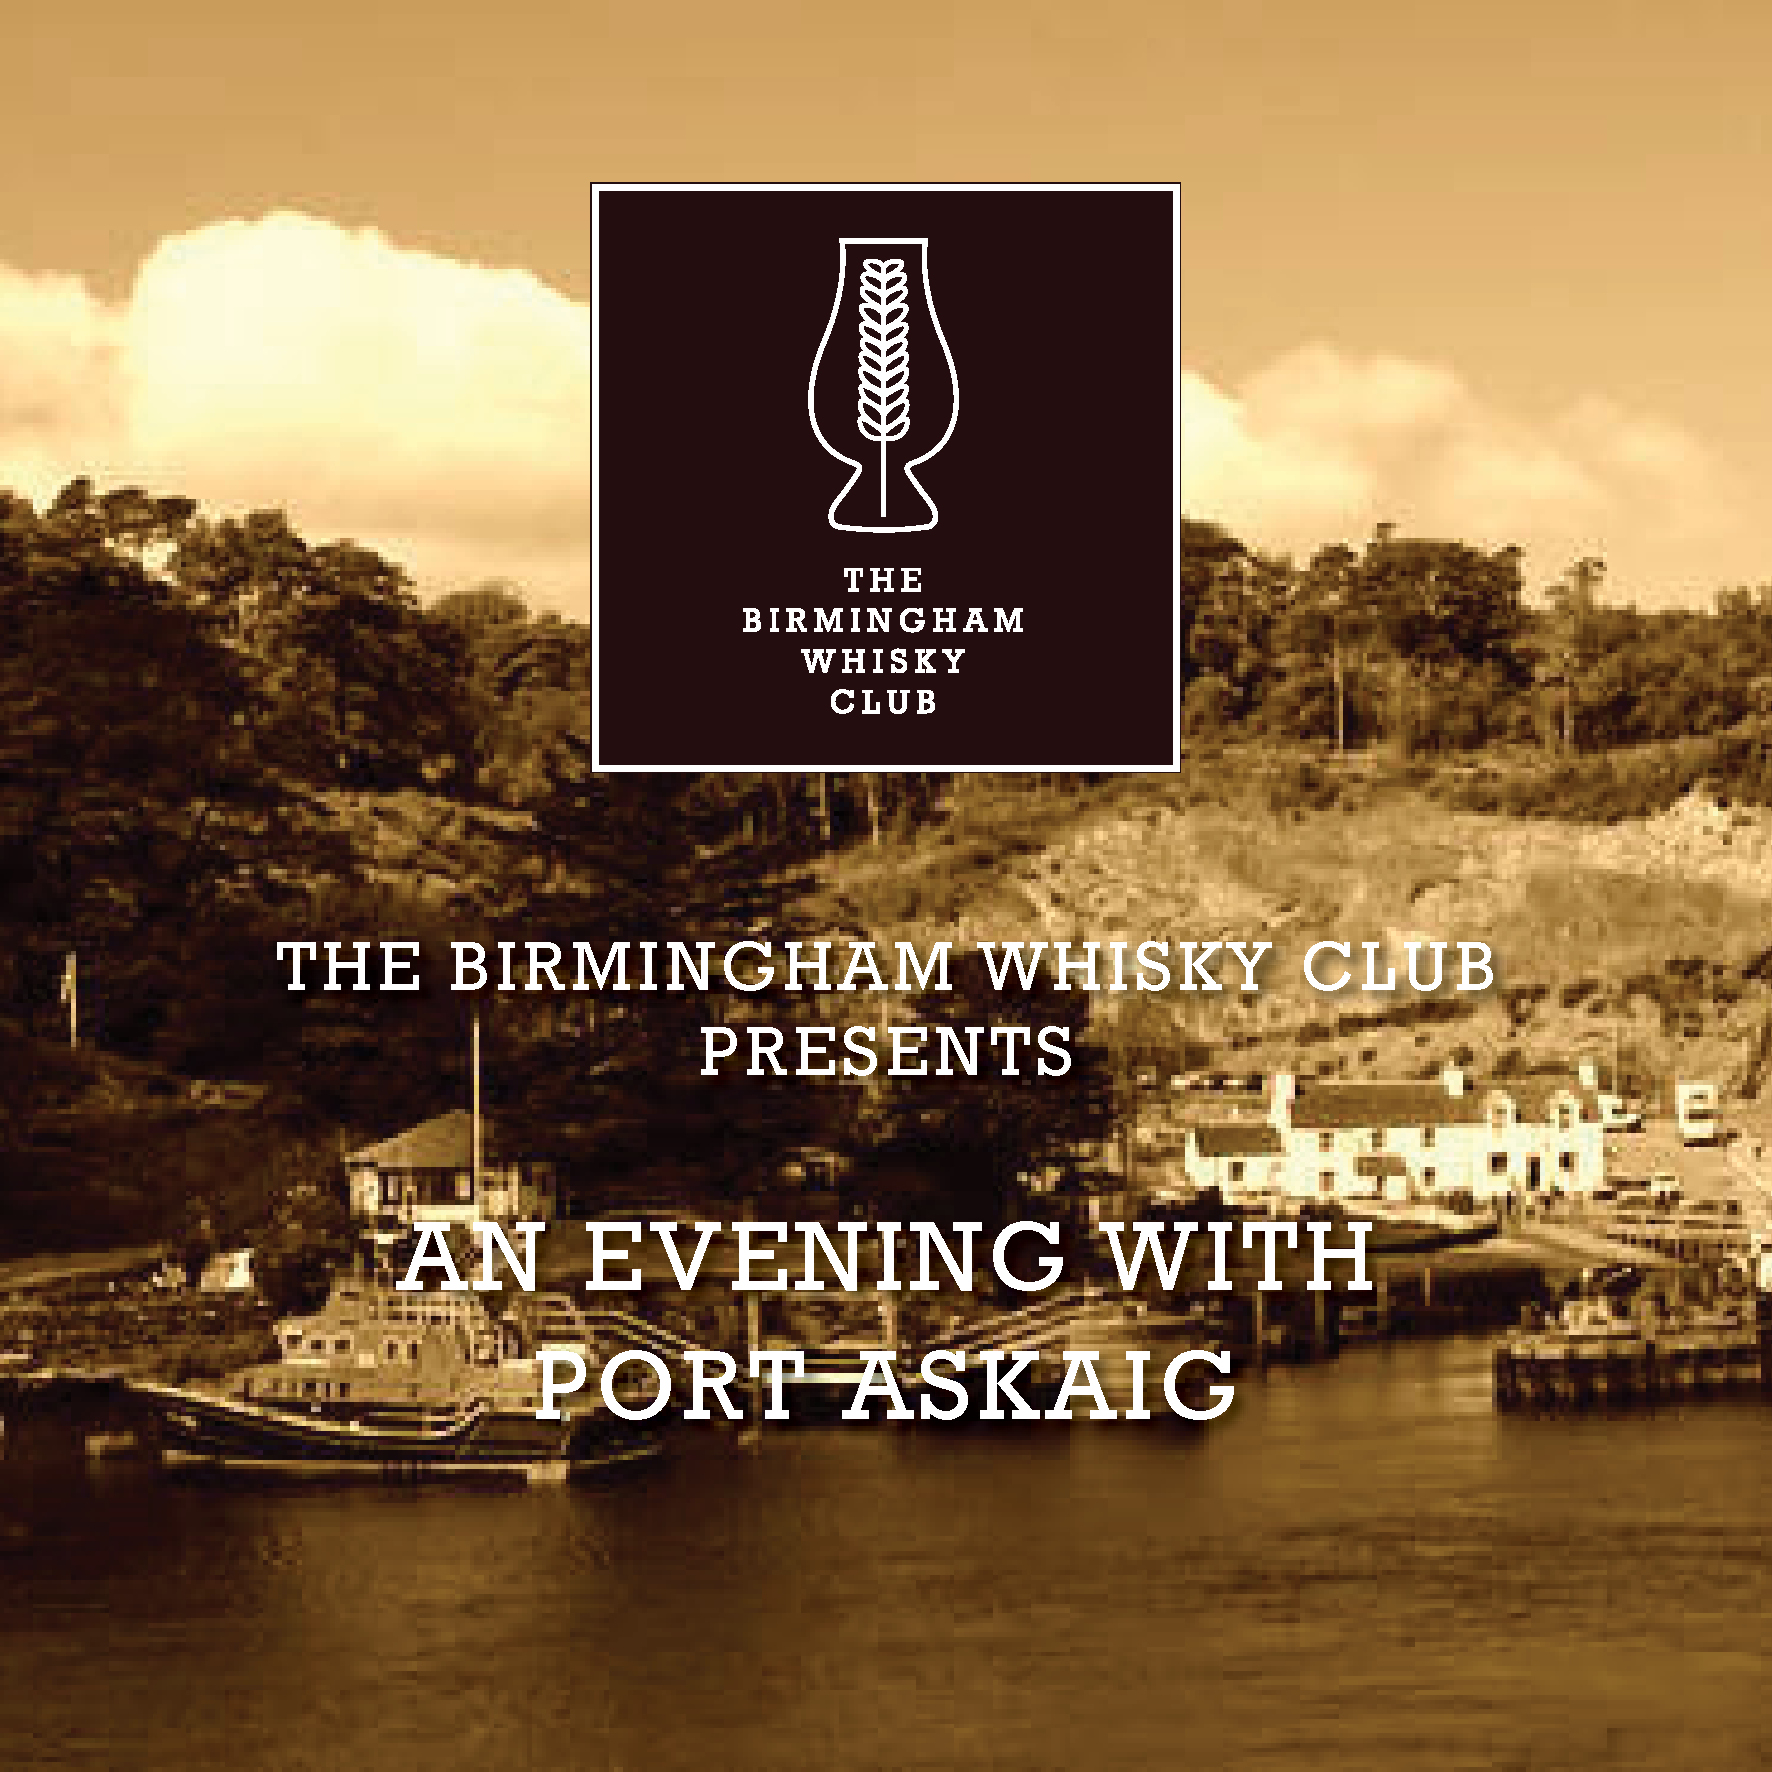 The Birmingham Whisky Club Presents :: An Evening With Port Askaig